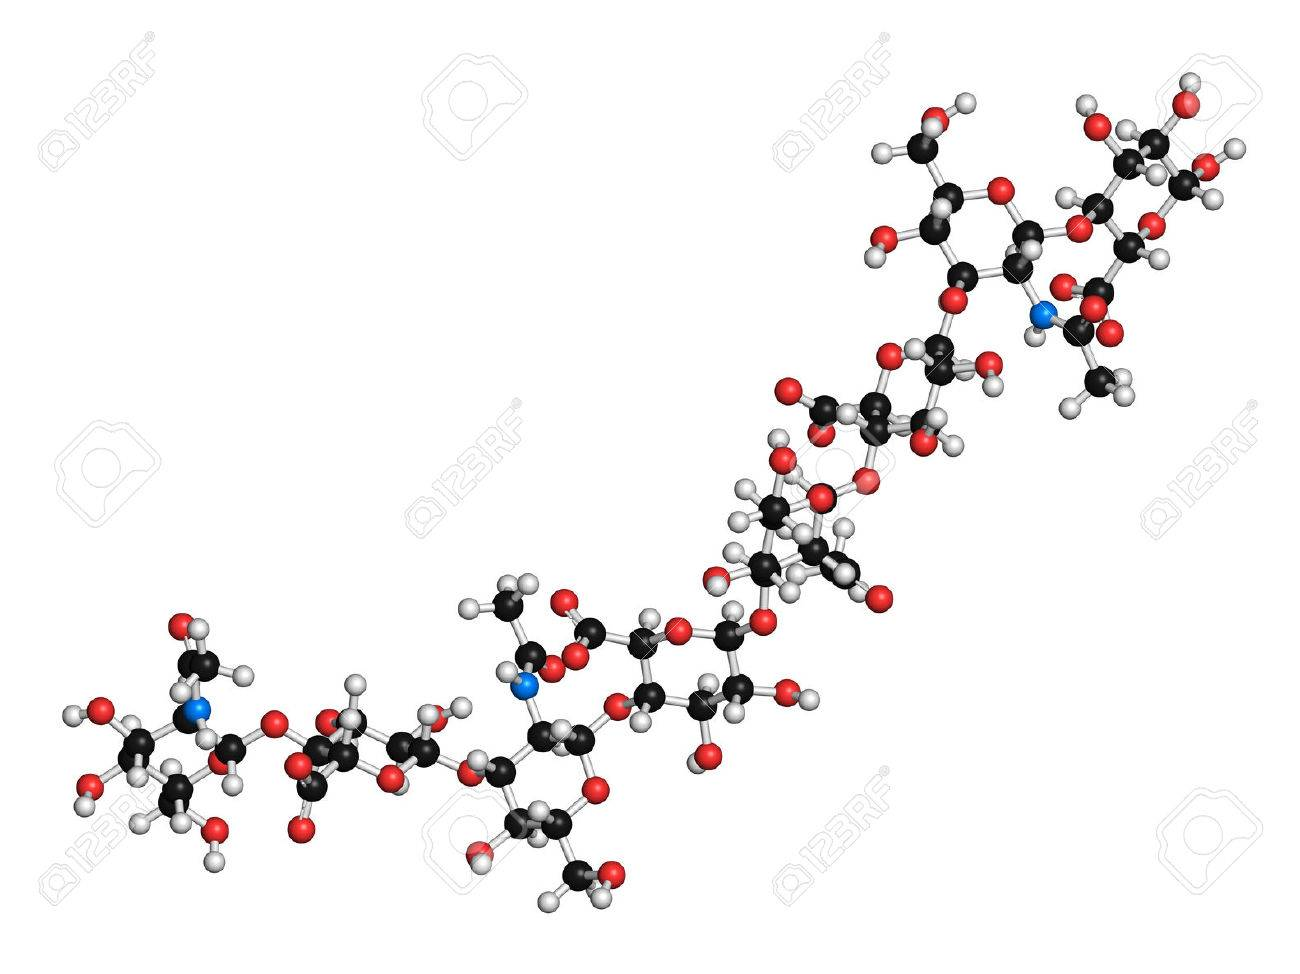 Molekuul 1 Royalty Free Photos Pictures Images And Stock Photography Carbon Dioxide Co2 Atomic Diagram Photo Image Hyaluronan Hyaluronic Acid Hyaluronate Glycosaminoglycan Molecule Short Fragment Part Of Extracellular